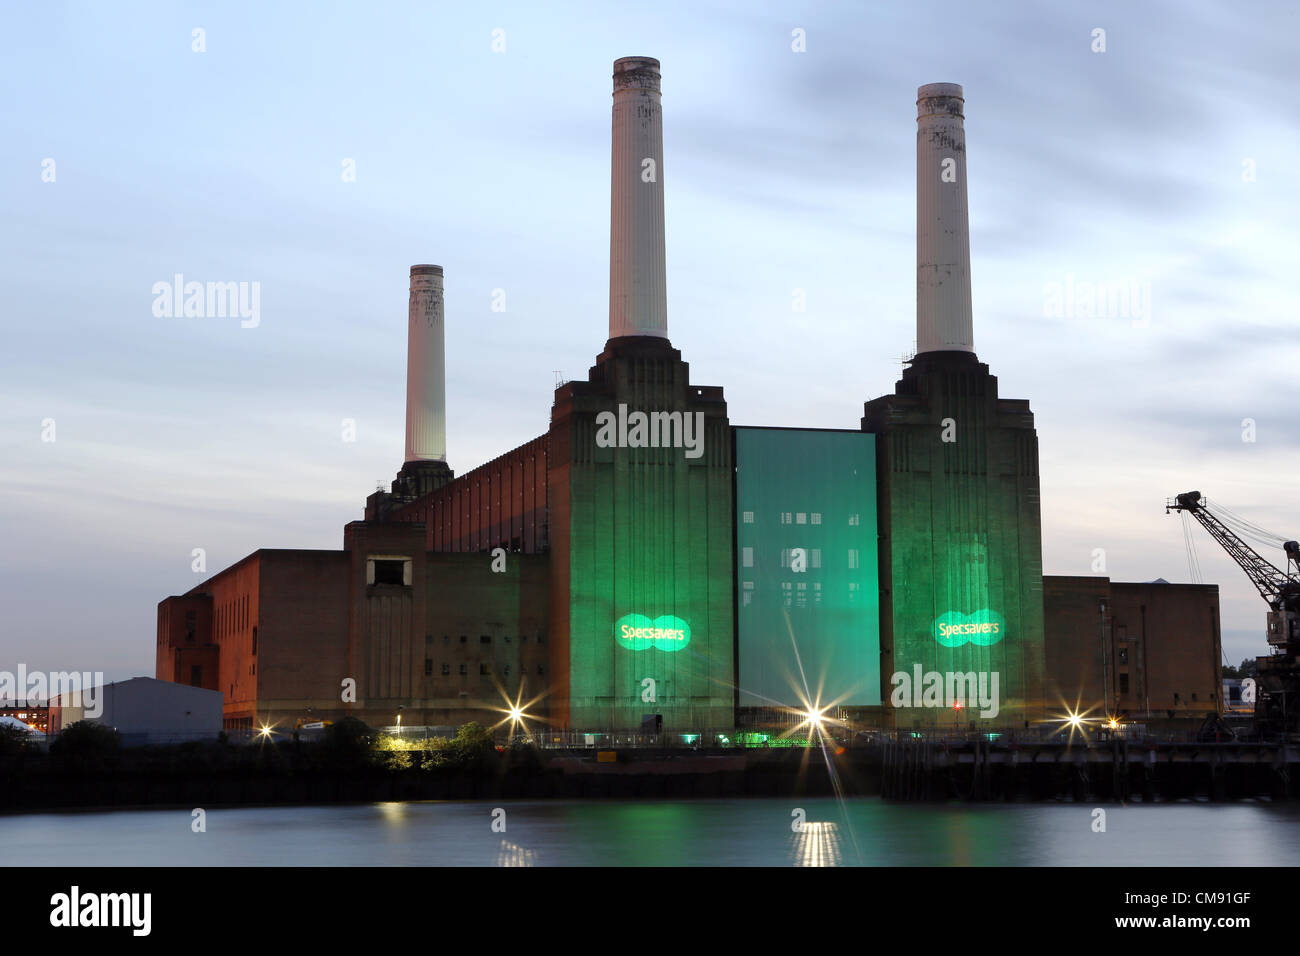 Battersea Power Station was iluminated for the Specsavers Spectacle Wearer of the Year Awards 2012. Stock Photo